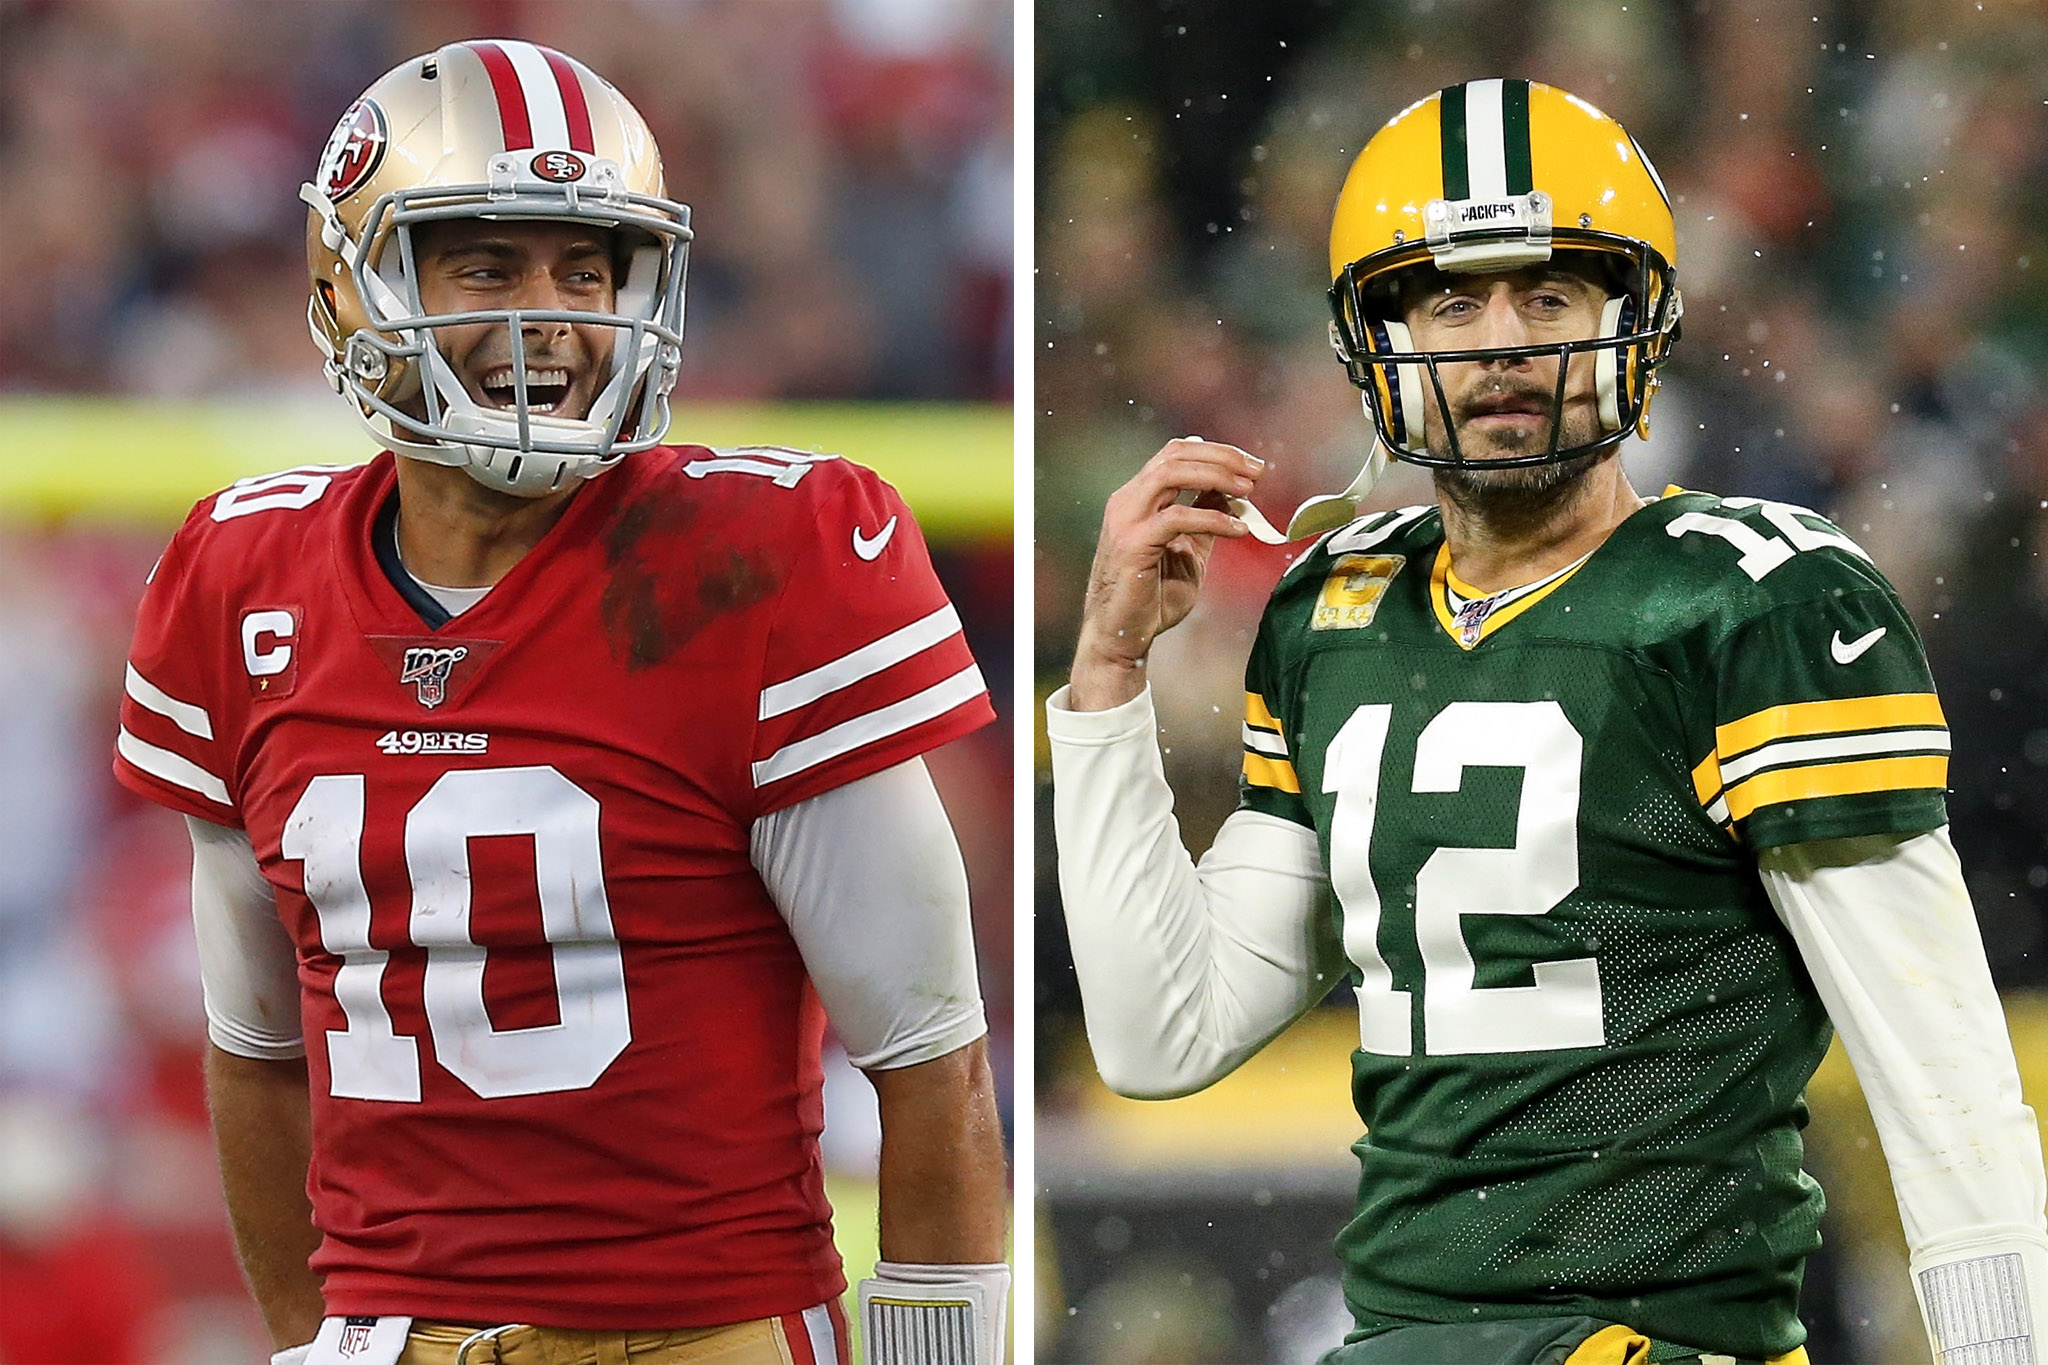 49ers Vs Packers Is The Most Expensive Ticket Of The Niners 2019 Season